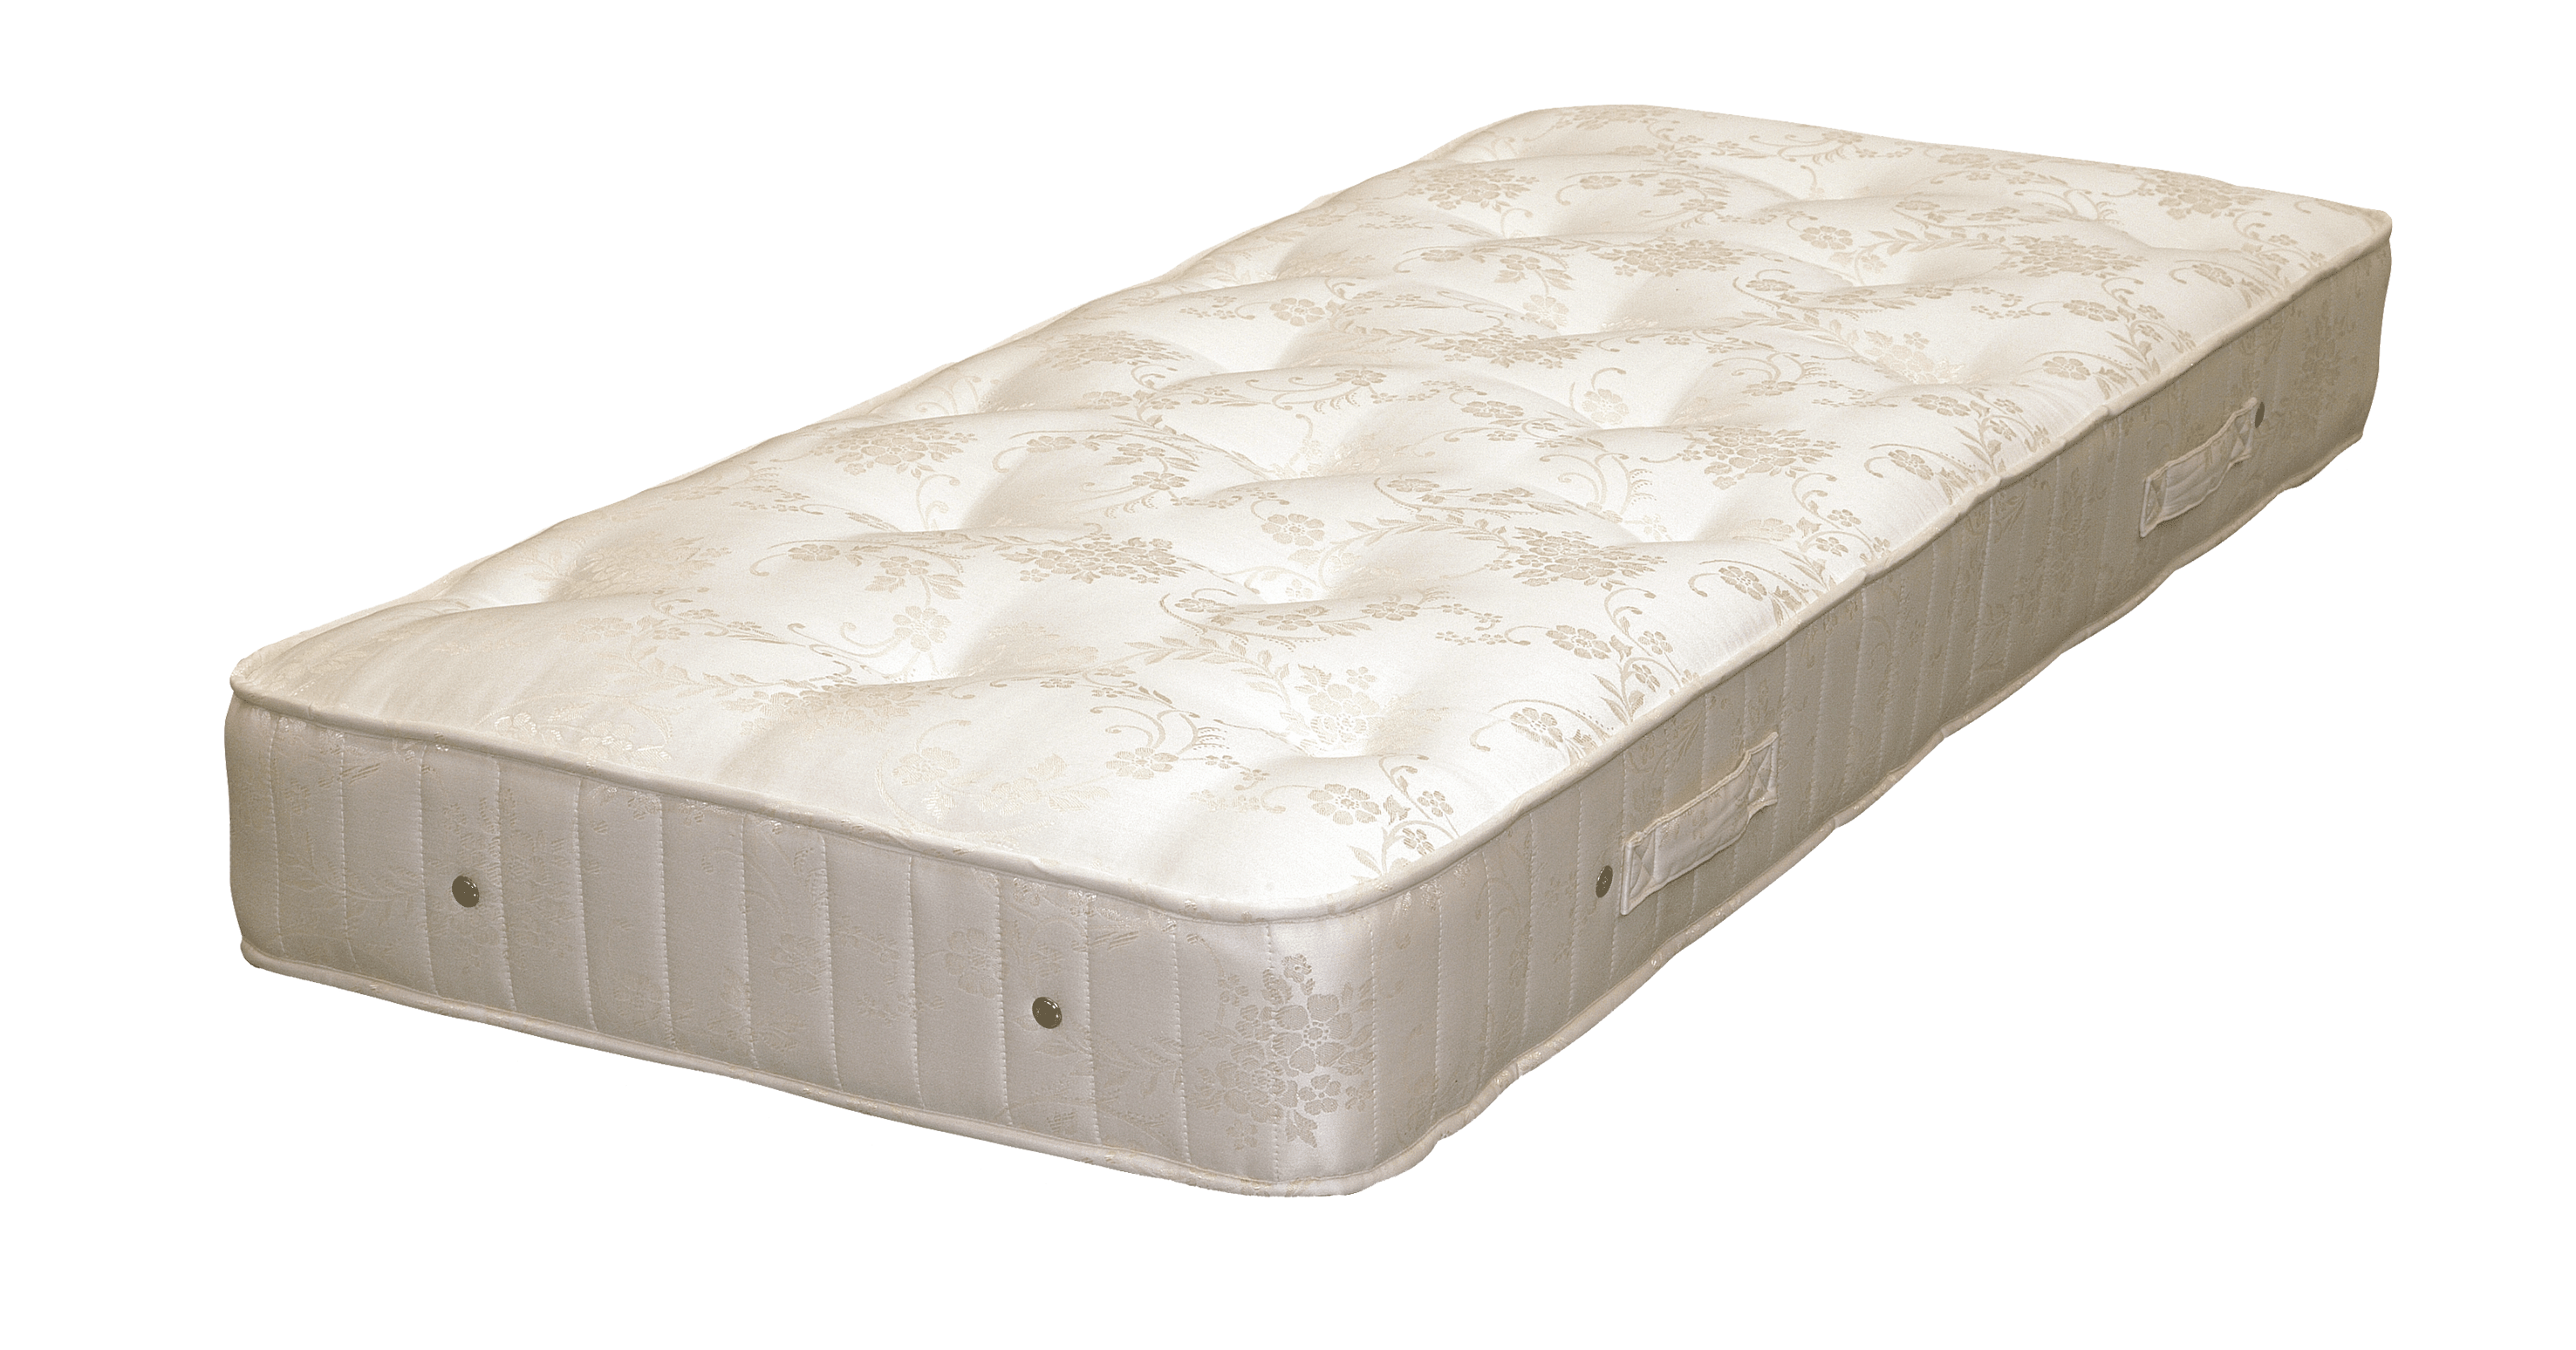 Individually pocketsprung mattress Modern Adjustable Beds